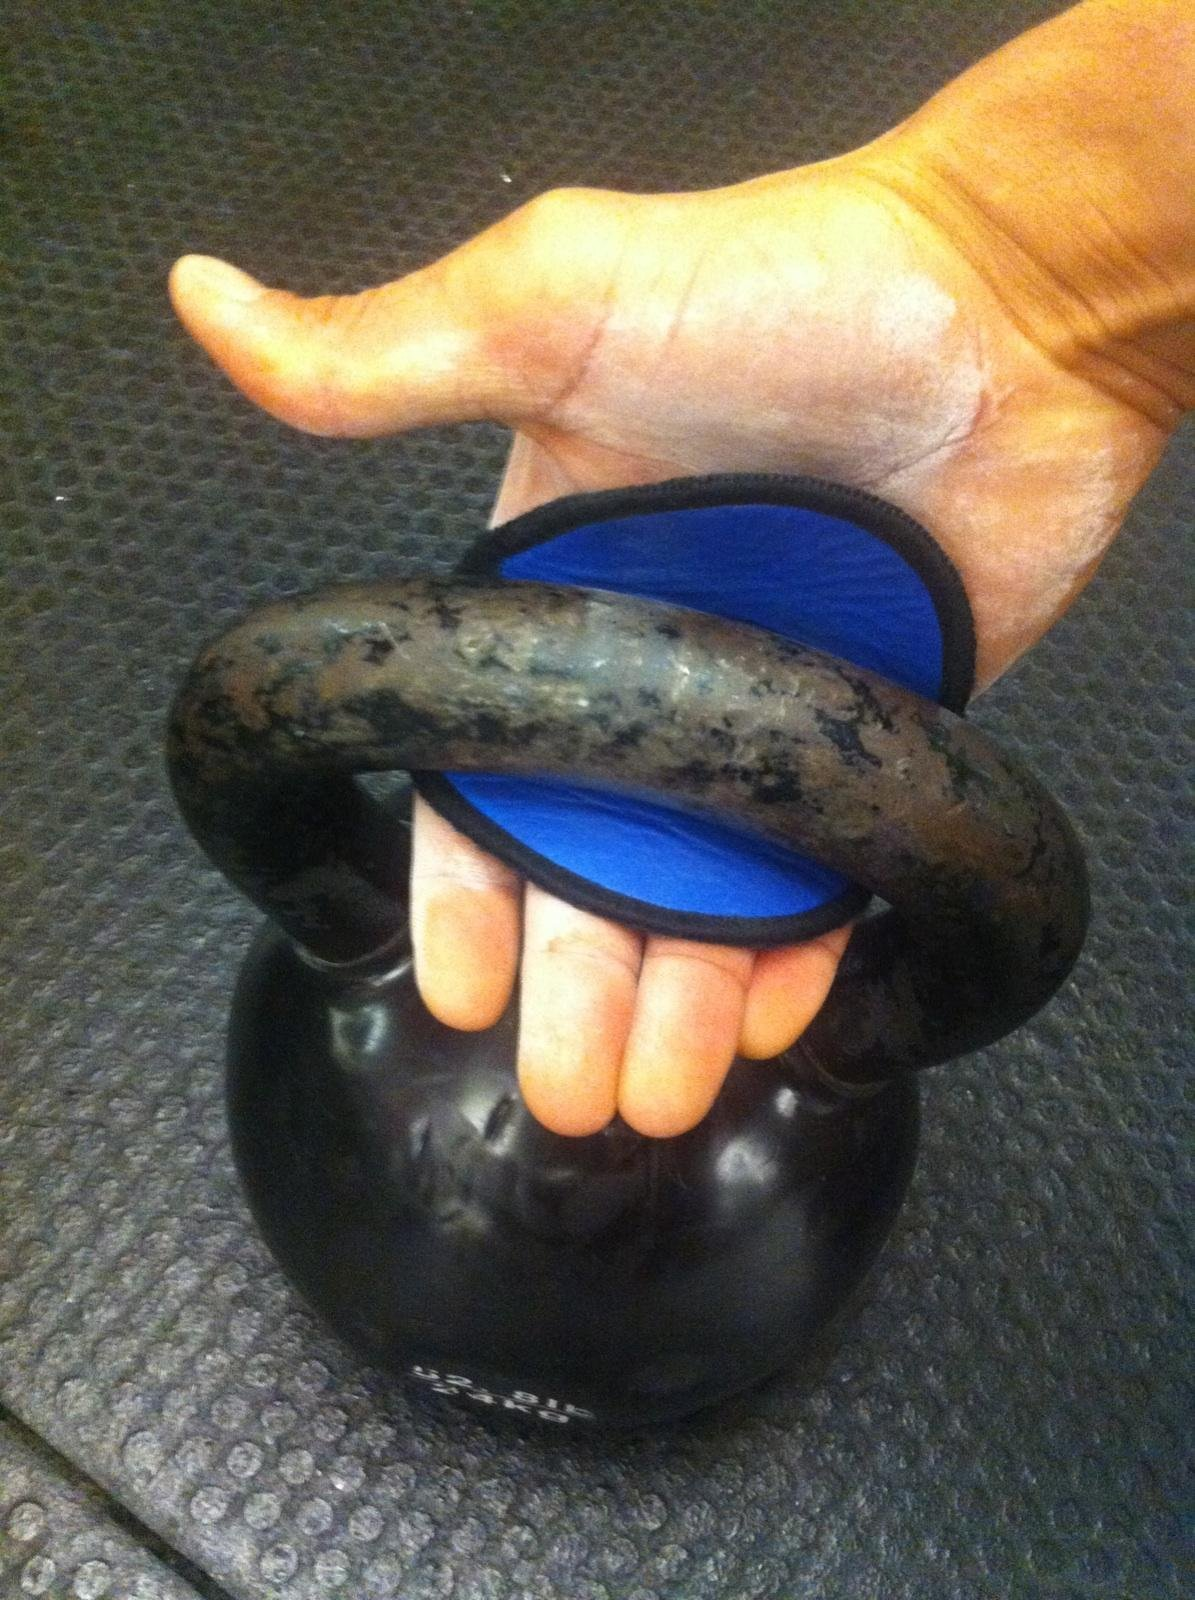 Fingerless Workout Gloves - The OG Alternative to Gym Gloves - Genuine Leather w 4 Finger Loop Sweat Proof Backing by GymPaws (Image #7)